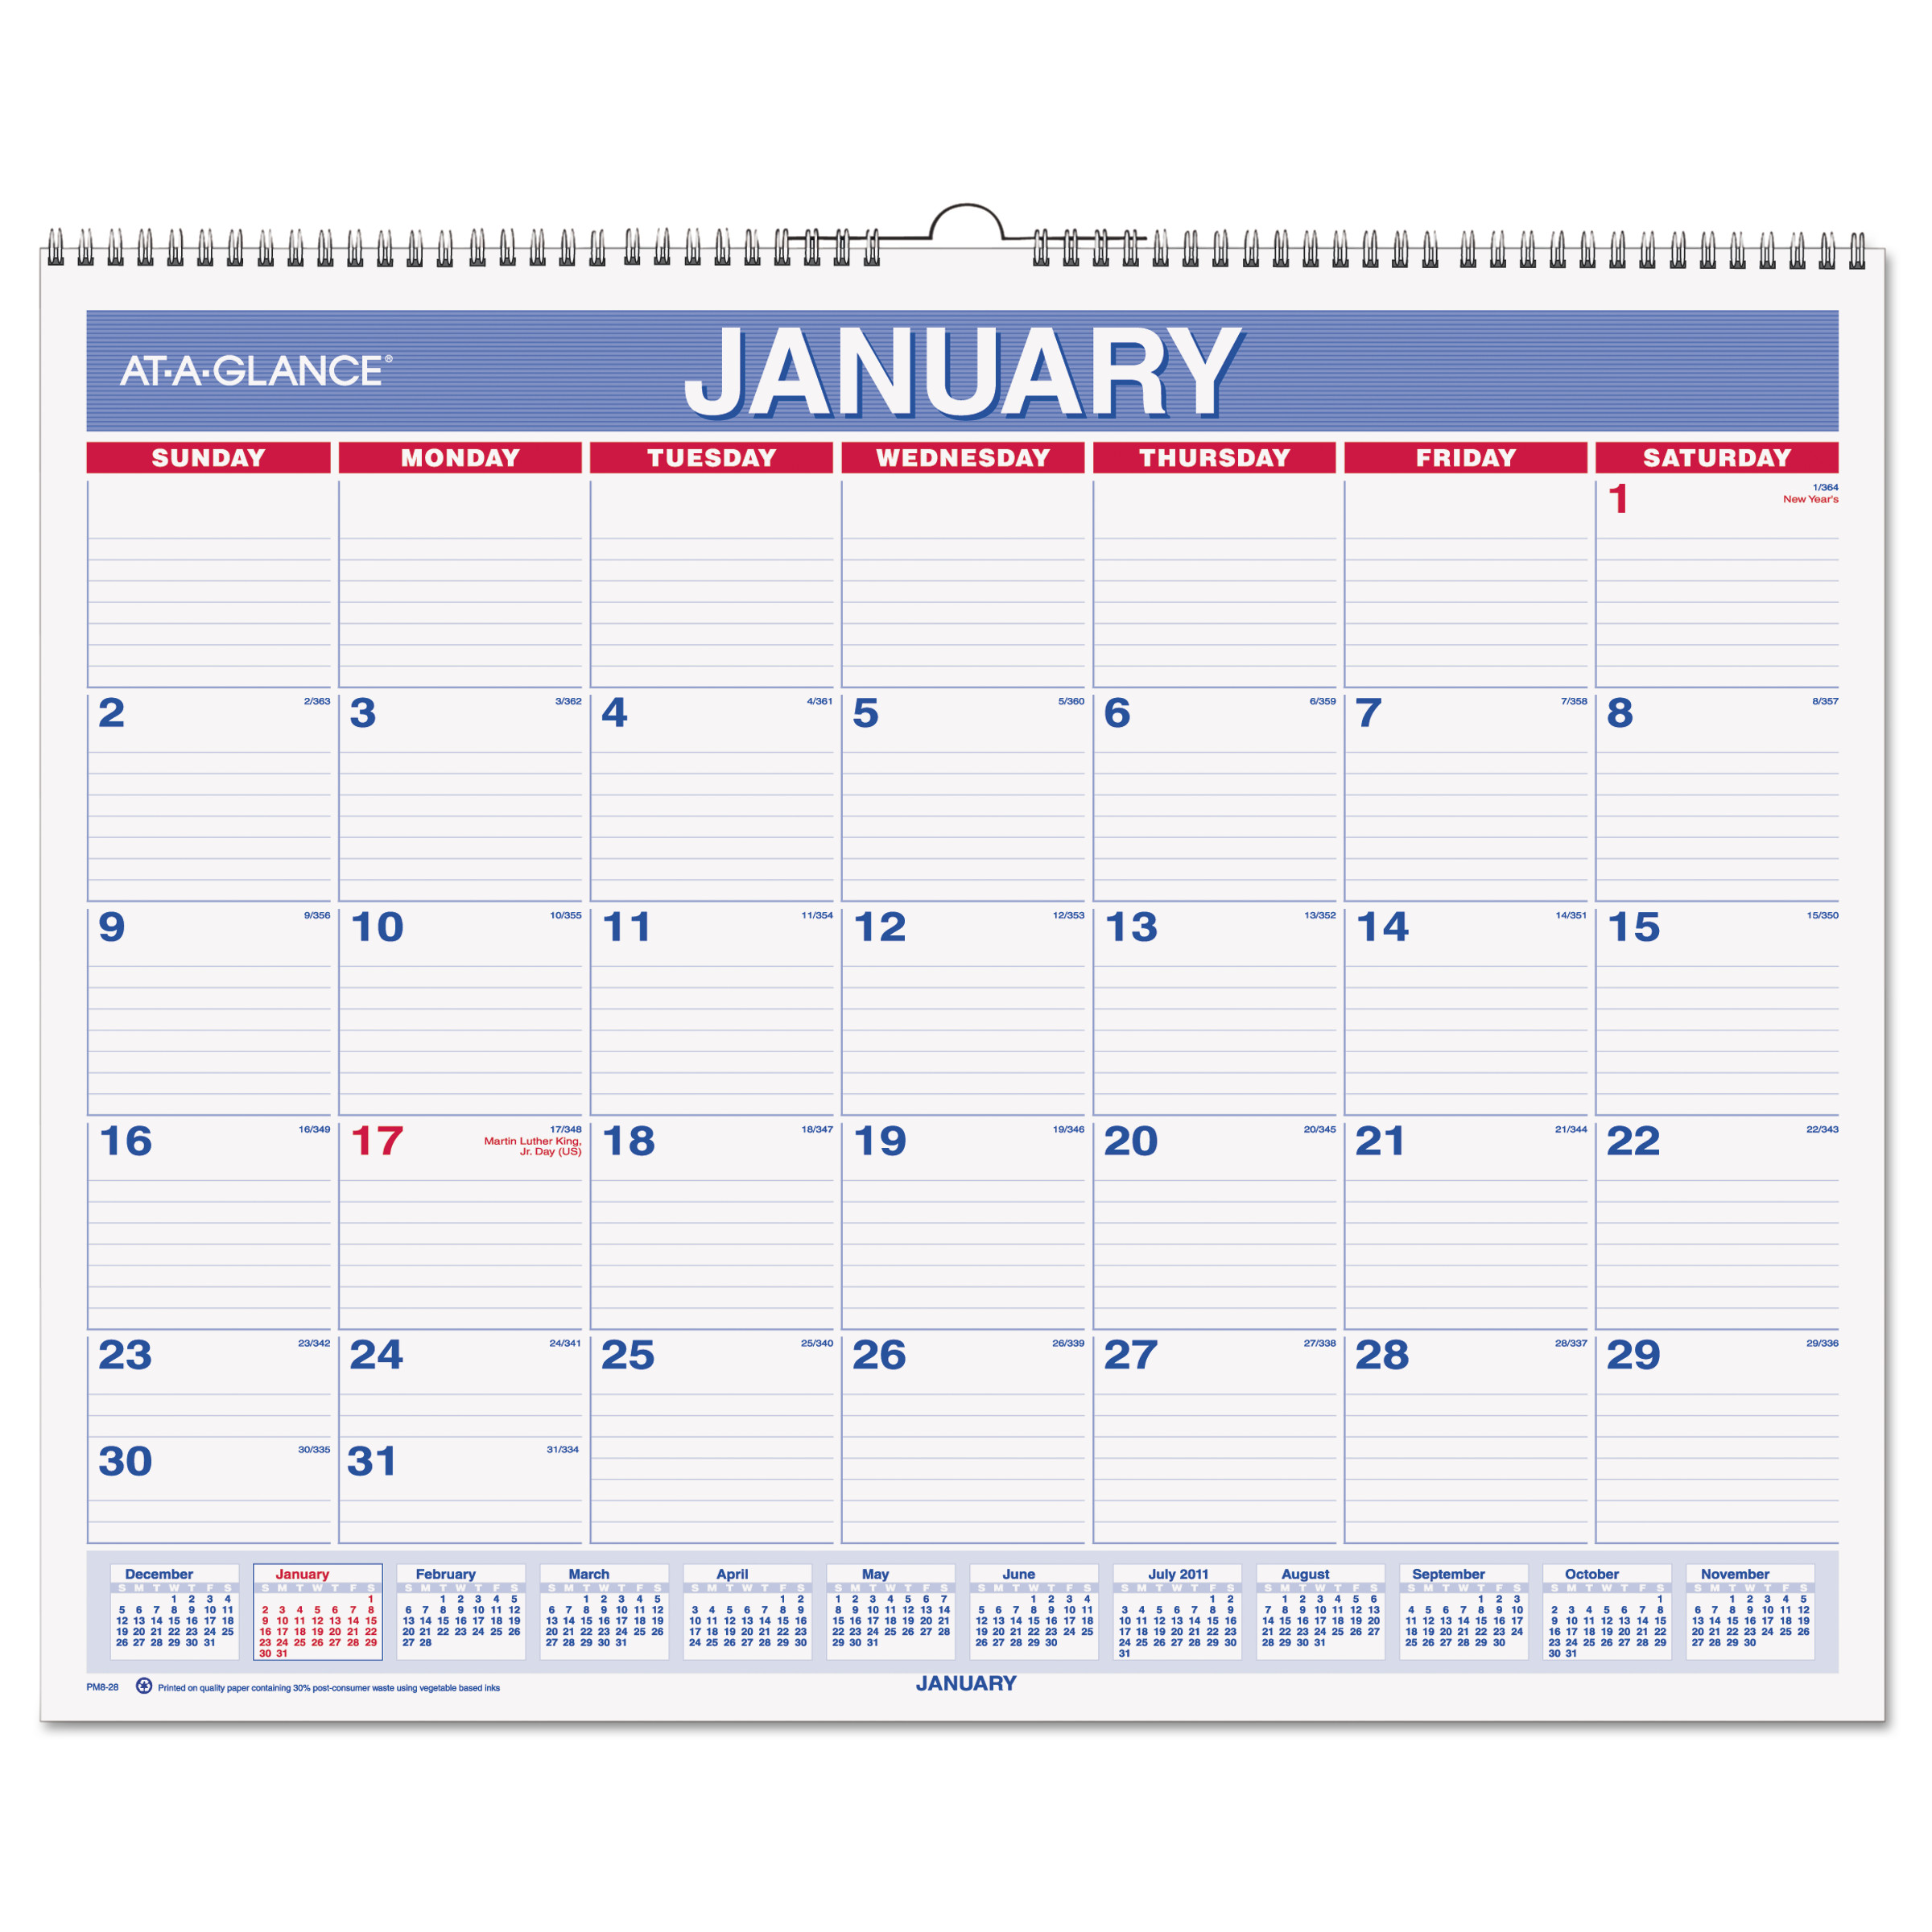 AT-A-GLANCE Monthly Wall Calendar, 15 x 12, Red Blue, 2018 by AT-A-GLANCE